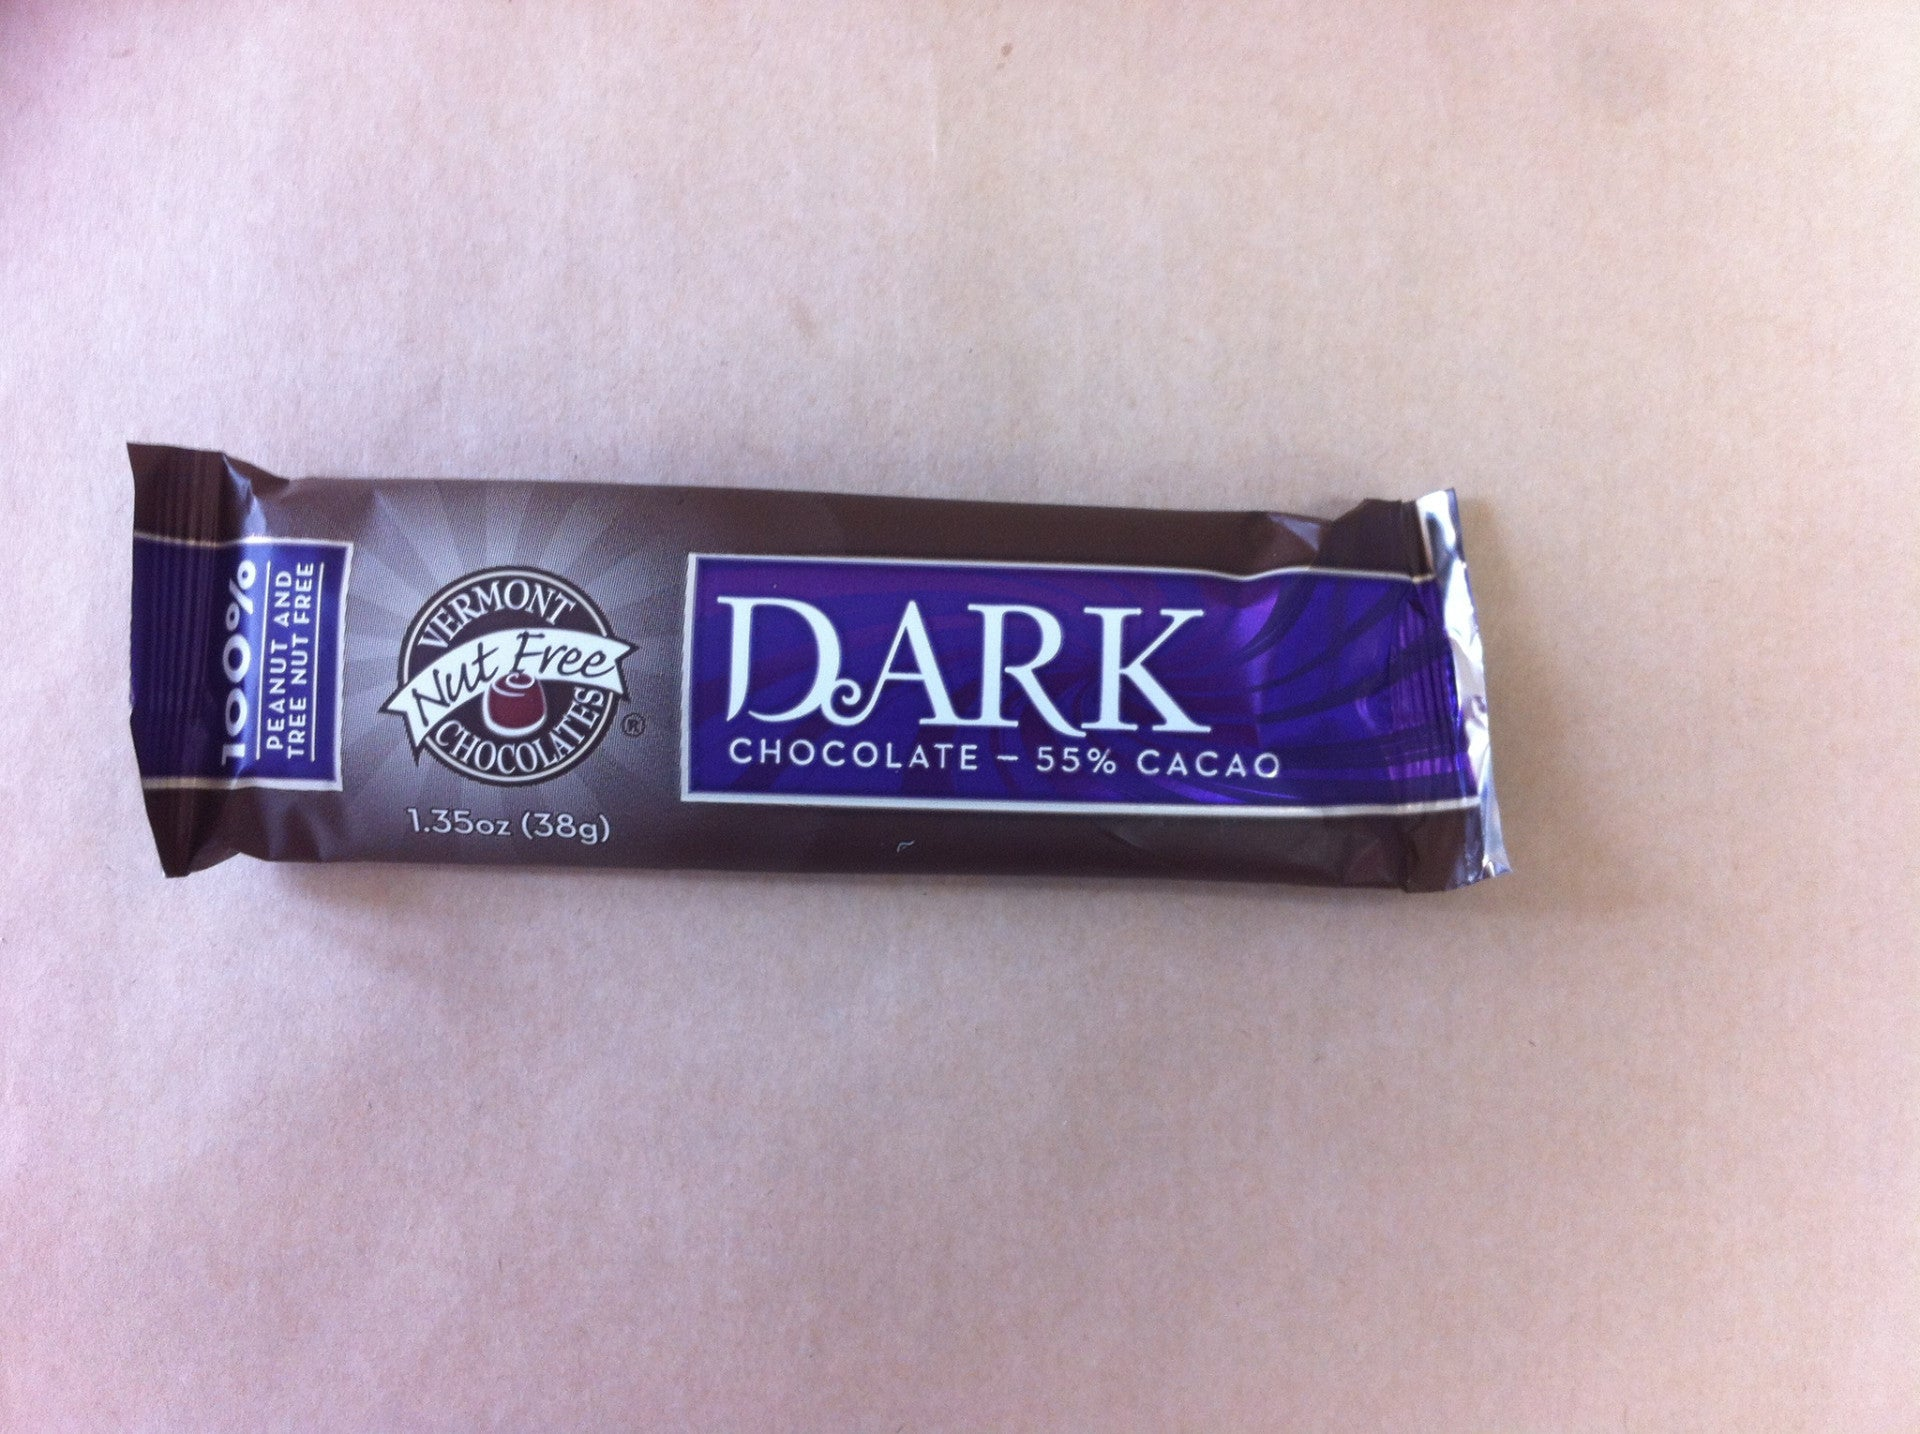 Vermont Nut-Free Dark Chocolate BarSafari Cakes, a Nut-Free Bakery in Kingston sells 100 % Nut Free Chocolate Candy bars made with Milk Chocolate. Order today. Chocolate orders can be delivered to your home or office in Kingston.